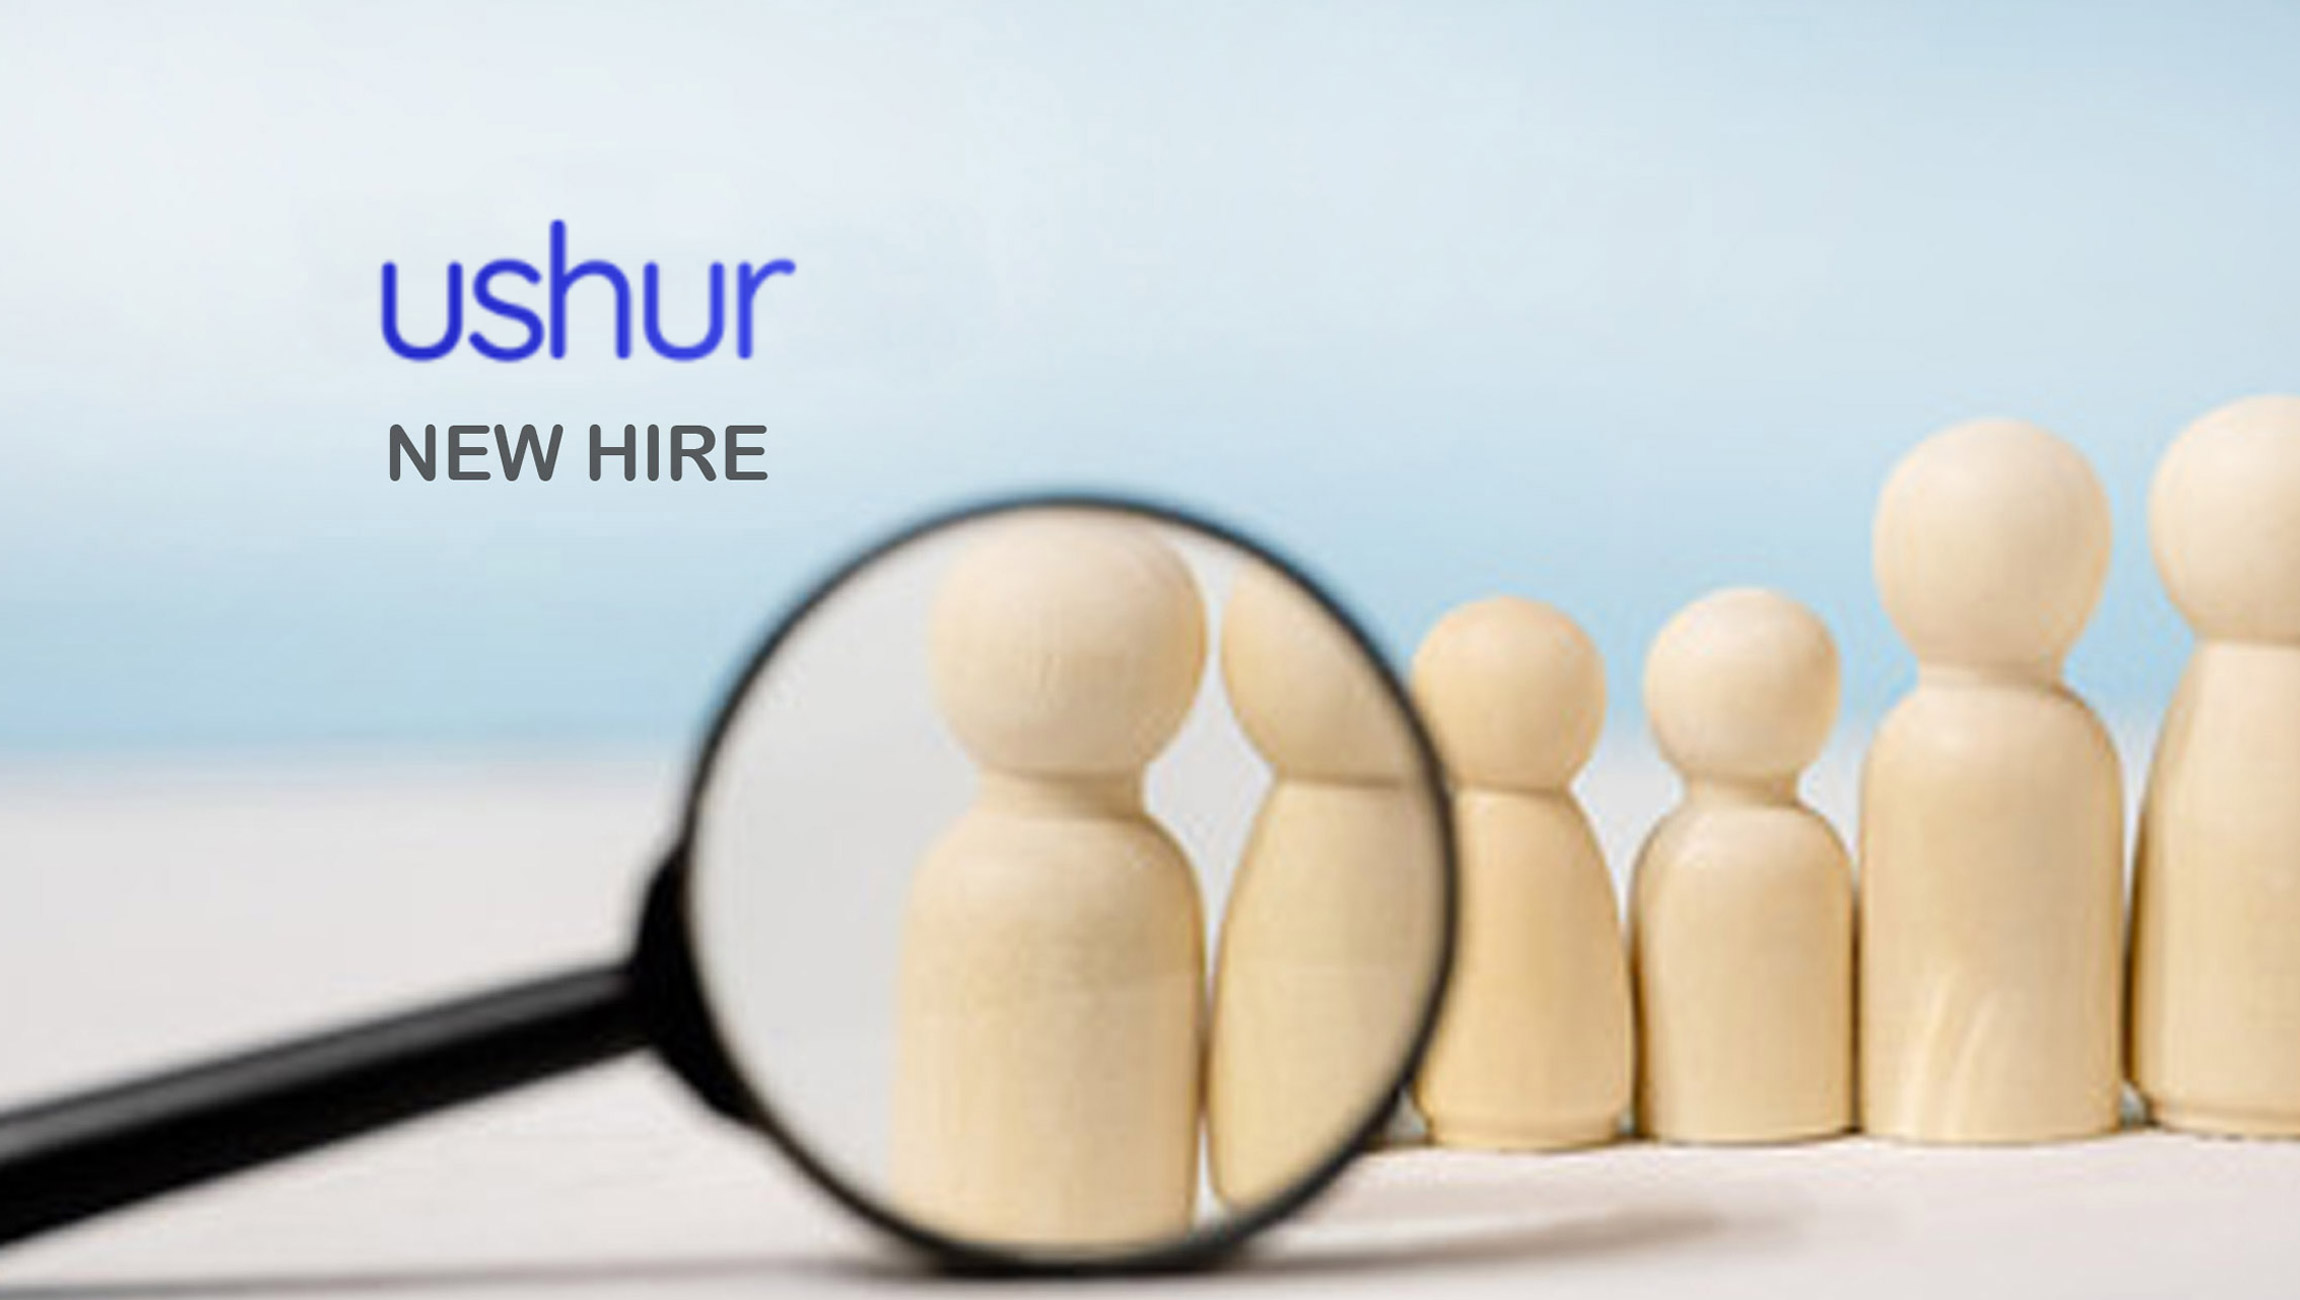 With New SVP of Sales, Ushur Adds Sixth Senior Leader in Six Months